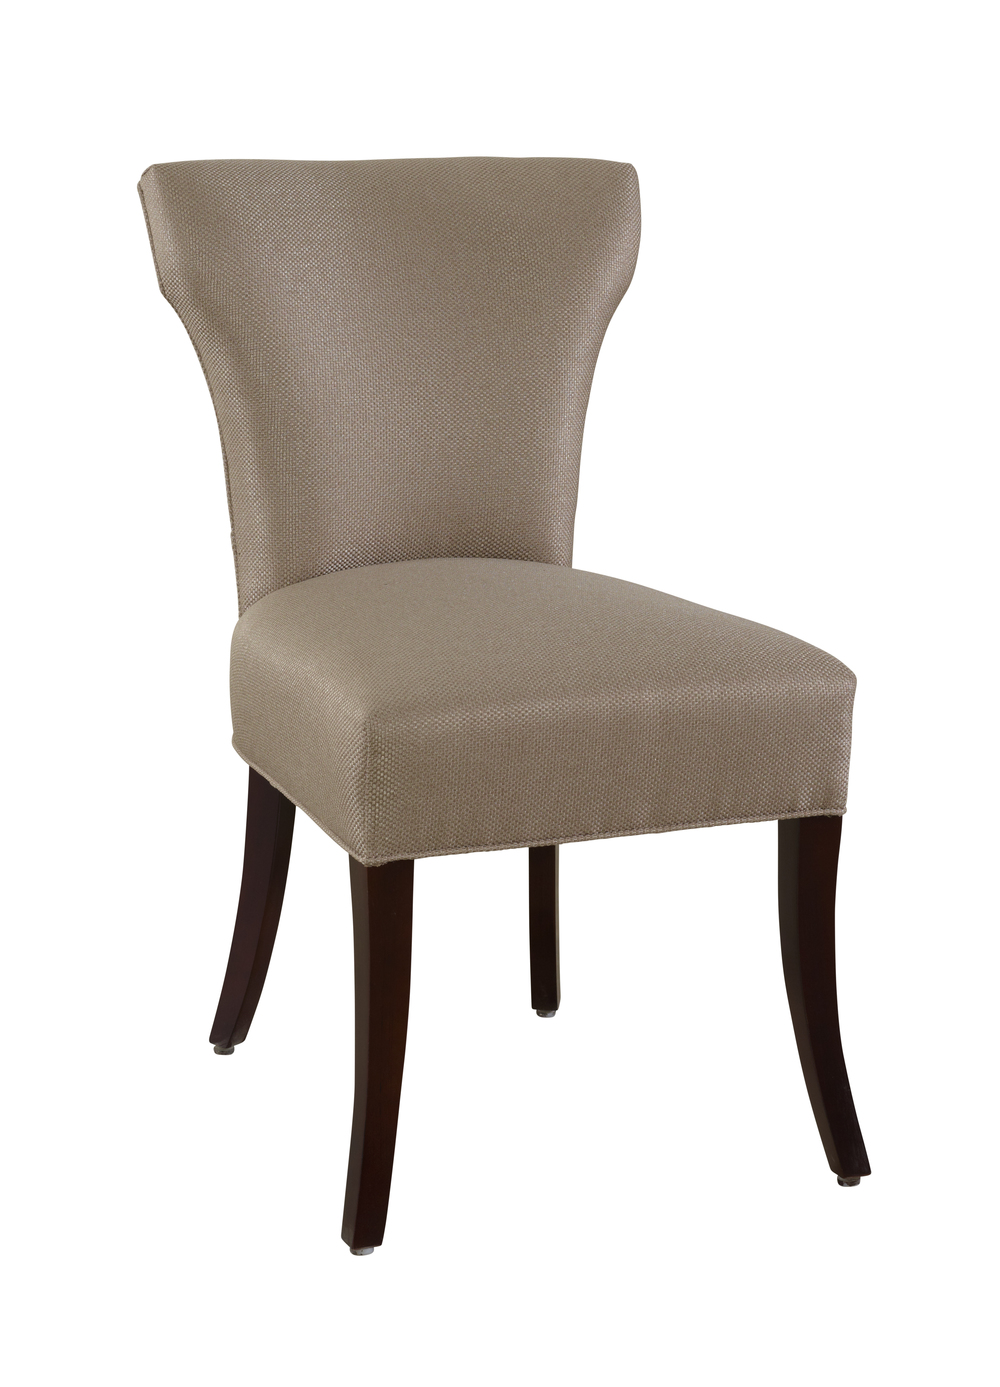 Designmaster Furniture - Destin Studio Chair